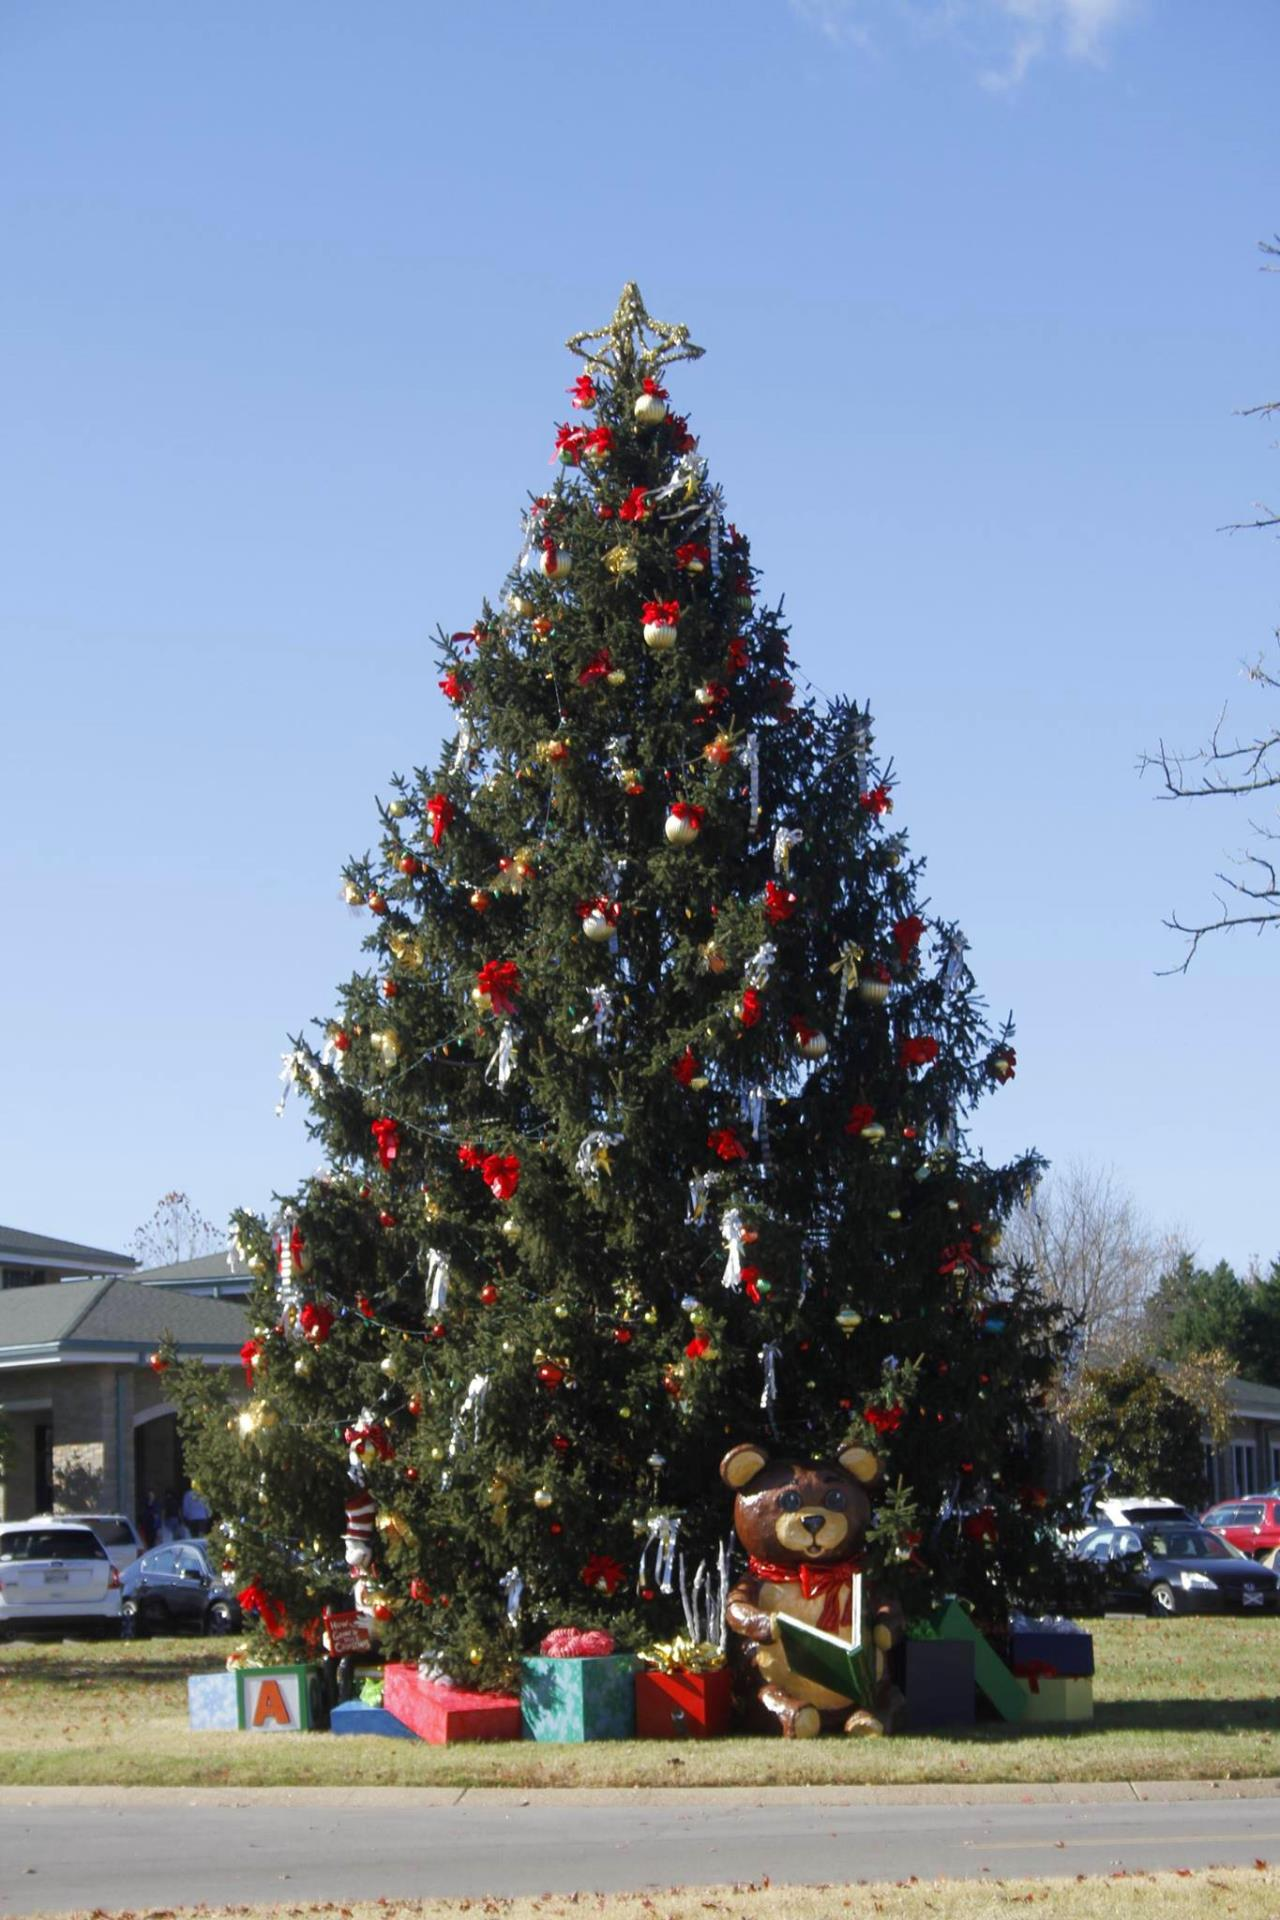 daytime image of decorated christmas tree